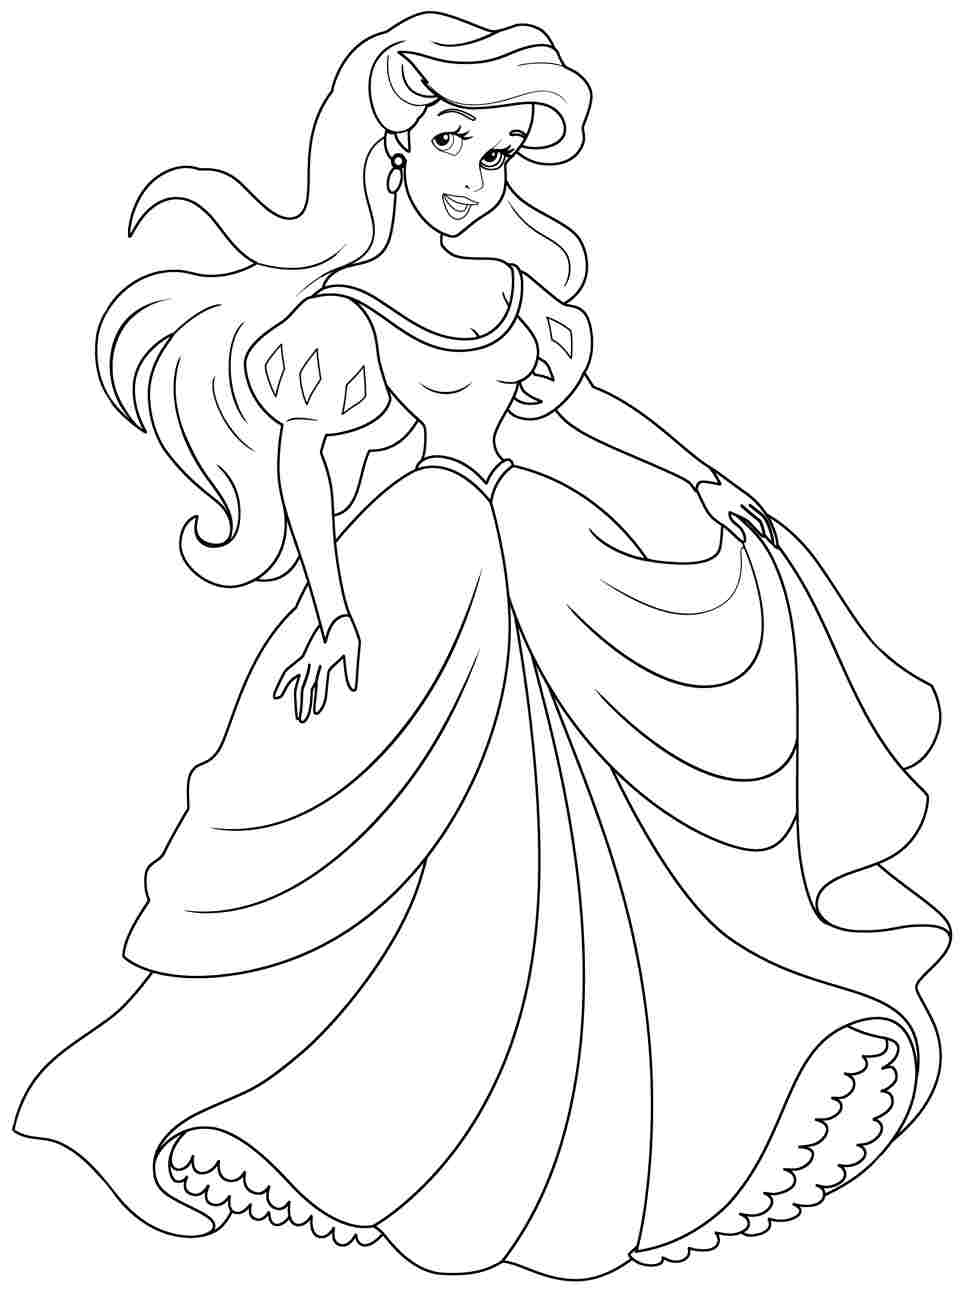 Disney Princess Winter Coloring Pages